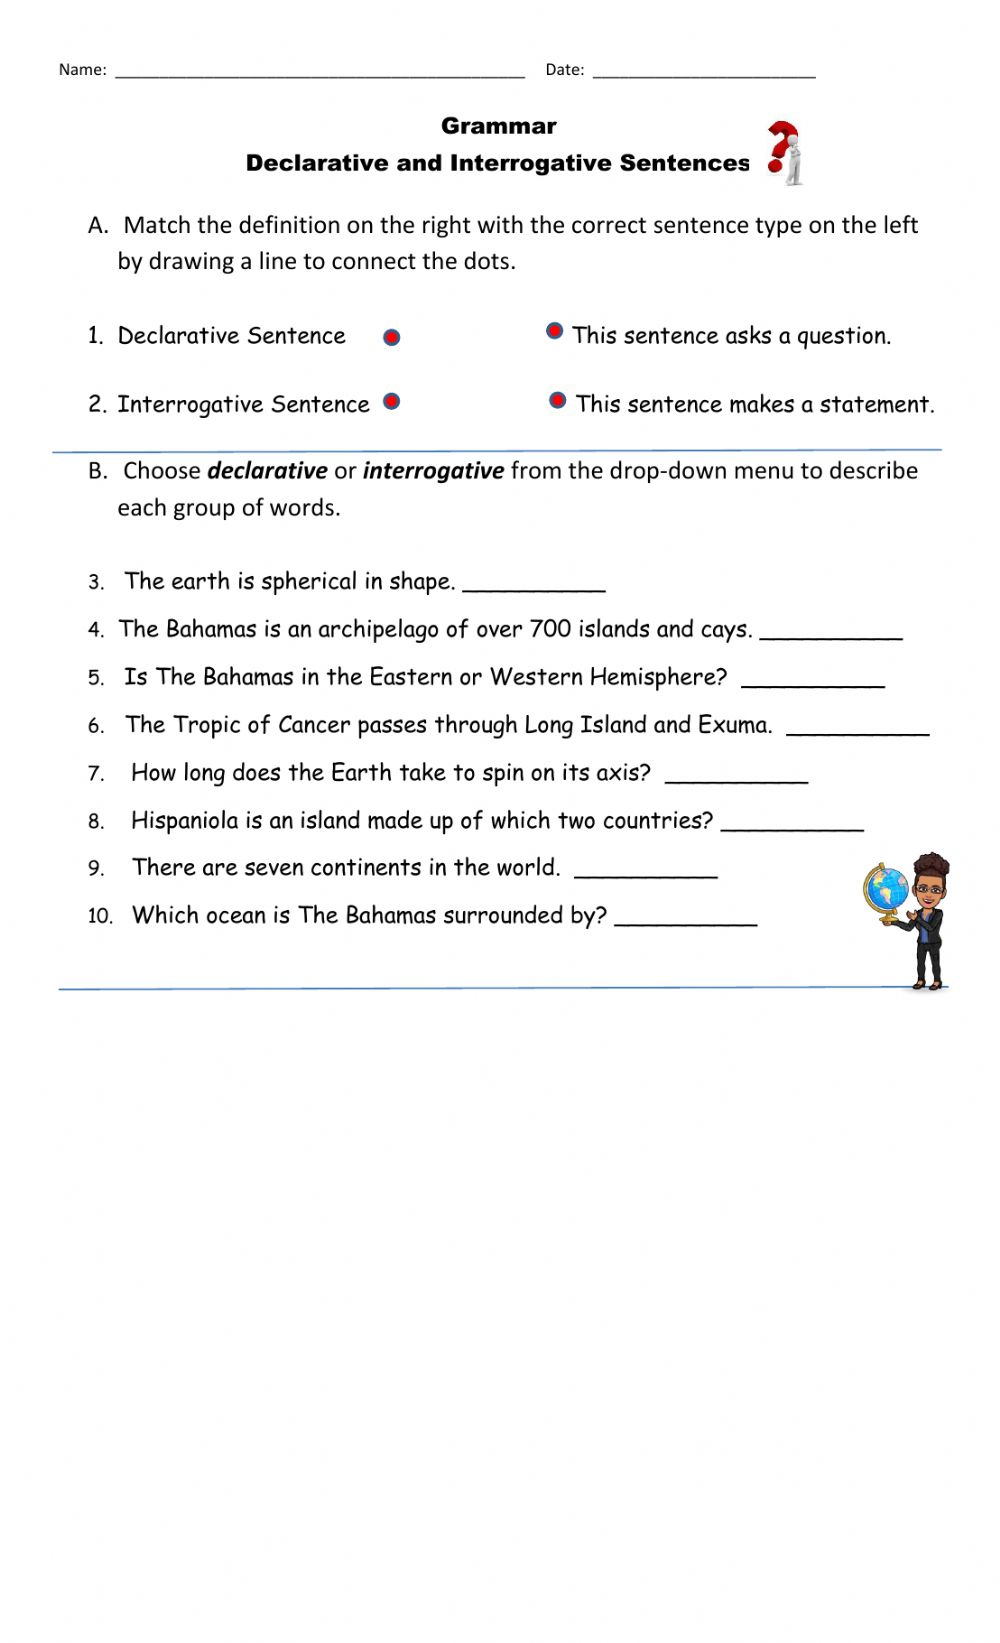 medium resolution of Declarative and Interrogative Sentences online worksheet for Grade 4